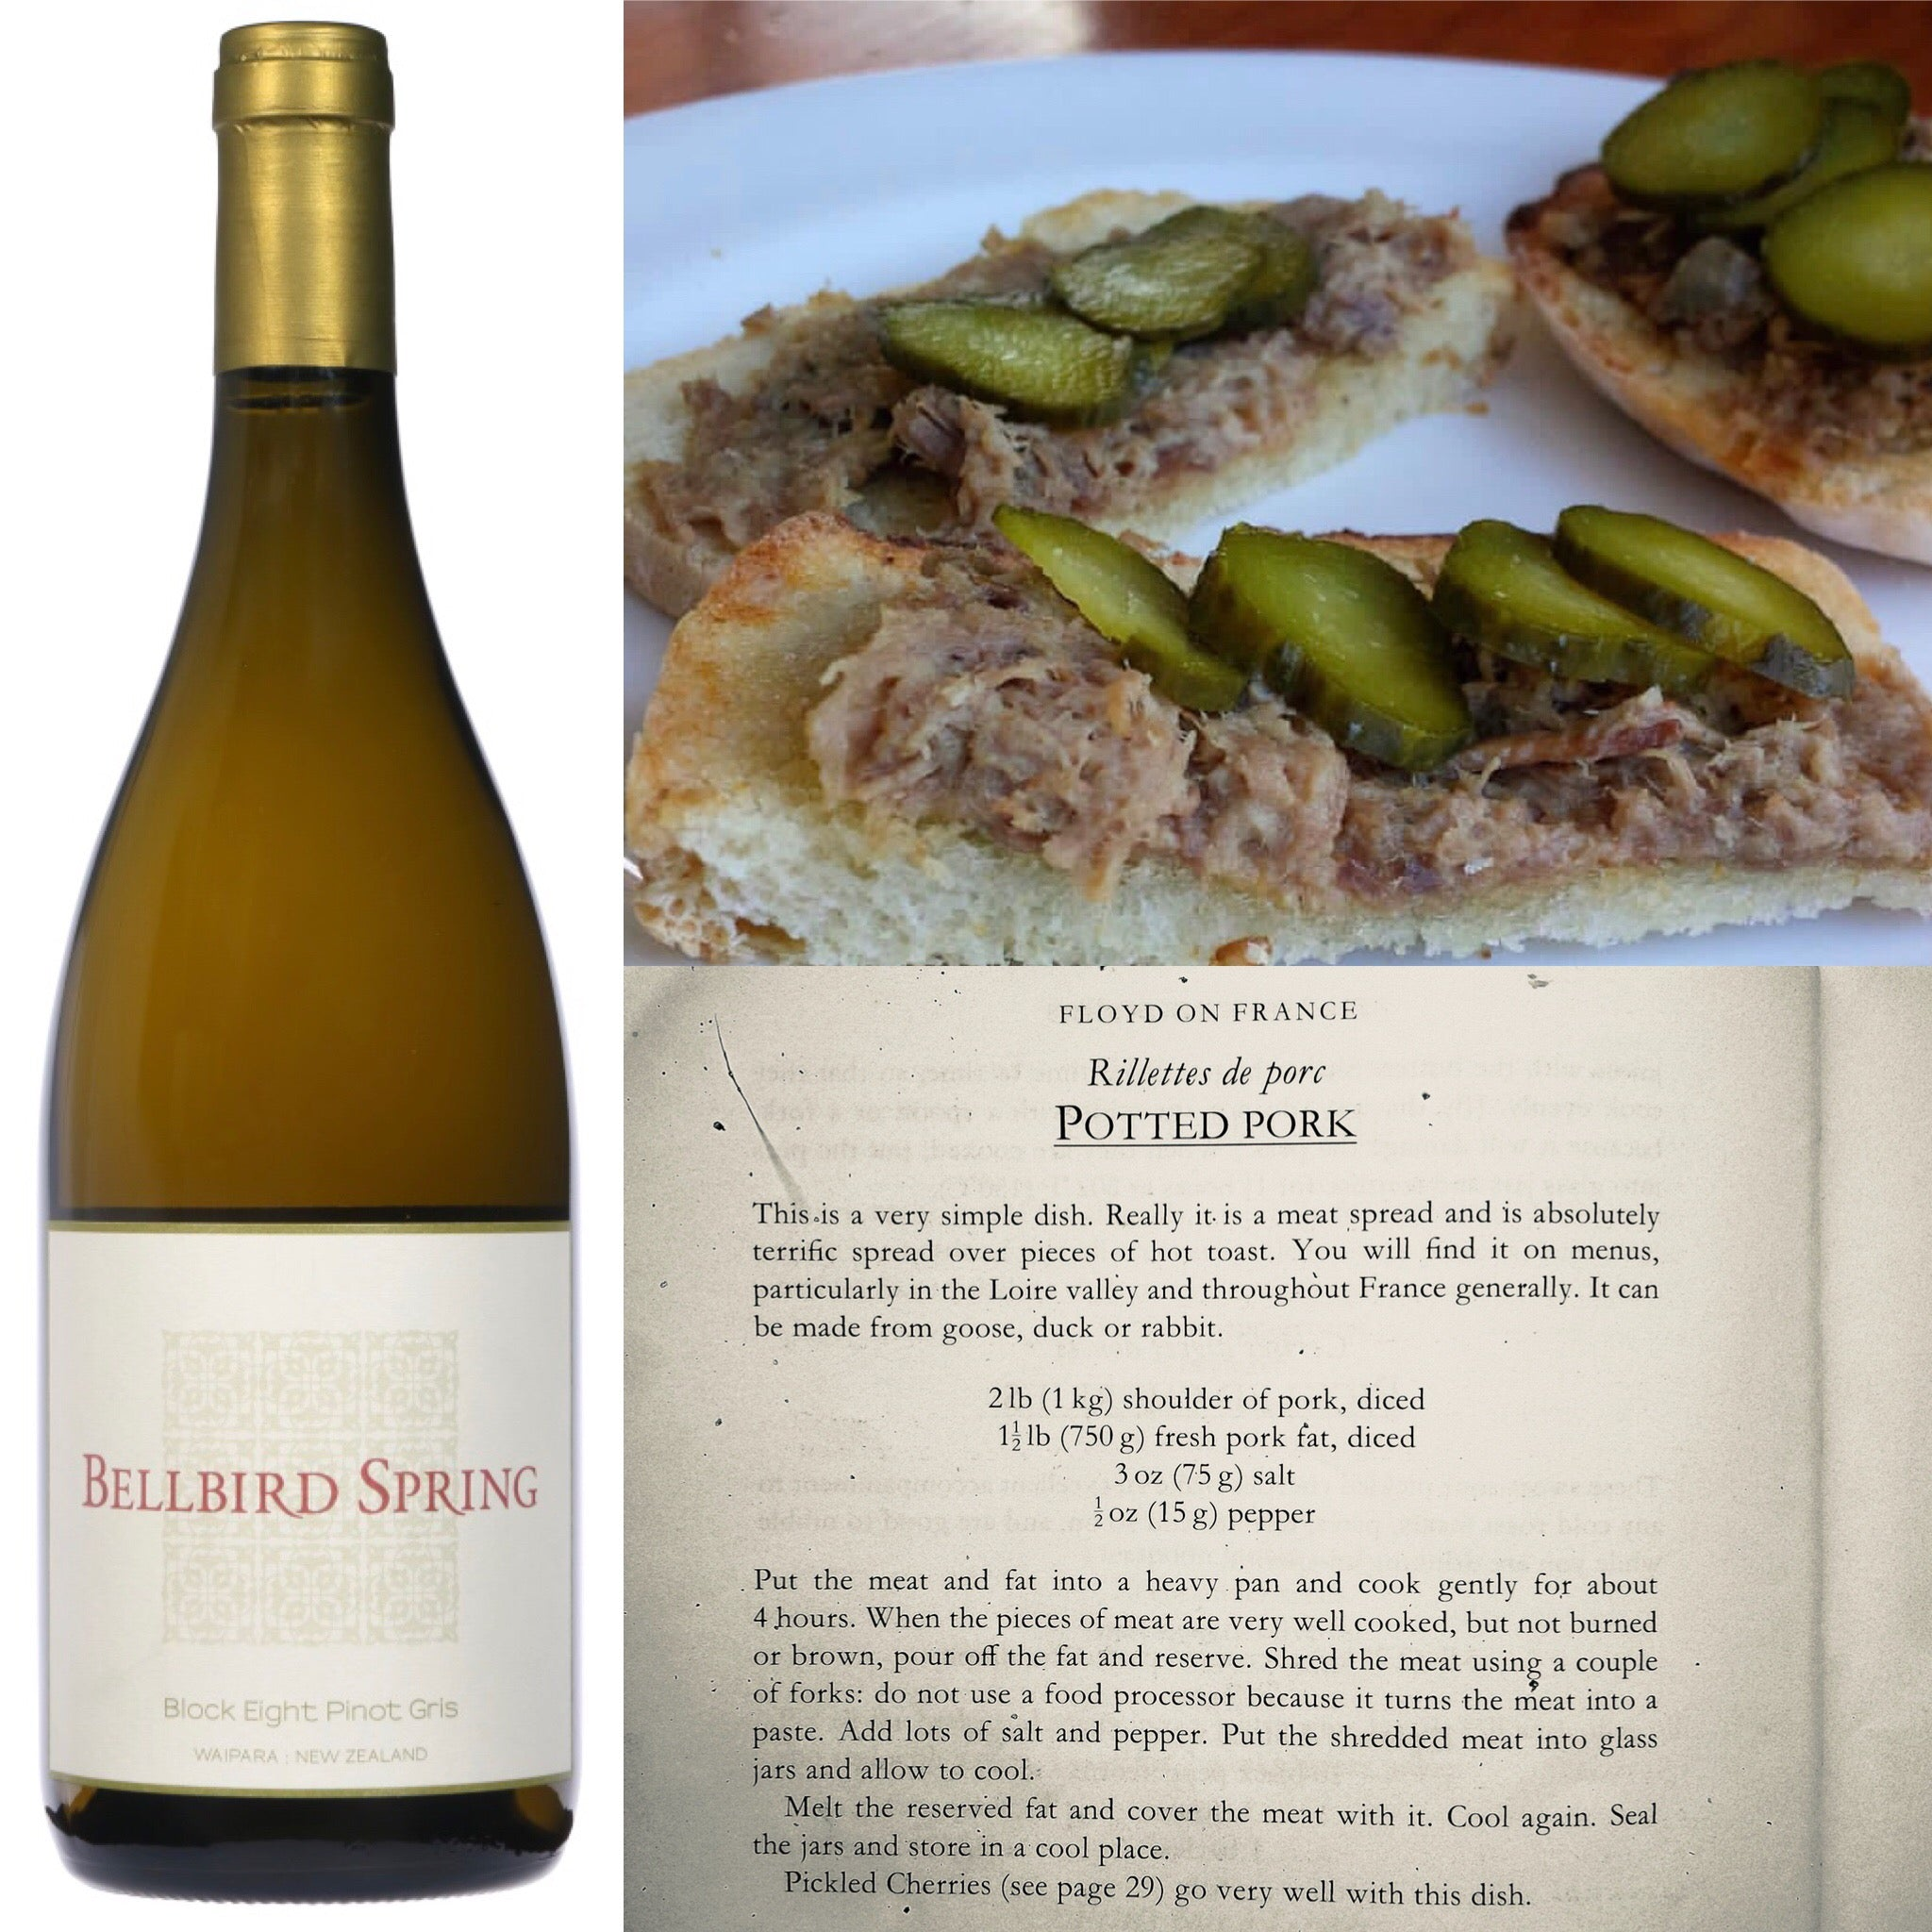 Food and Wine Match - Block Eight Pinot Gris with Pork Rillettes